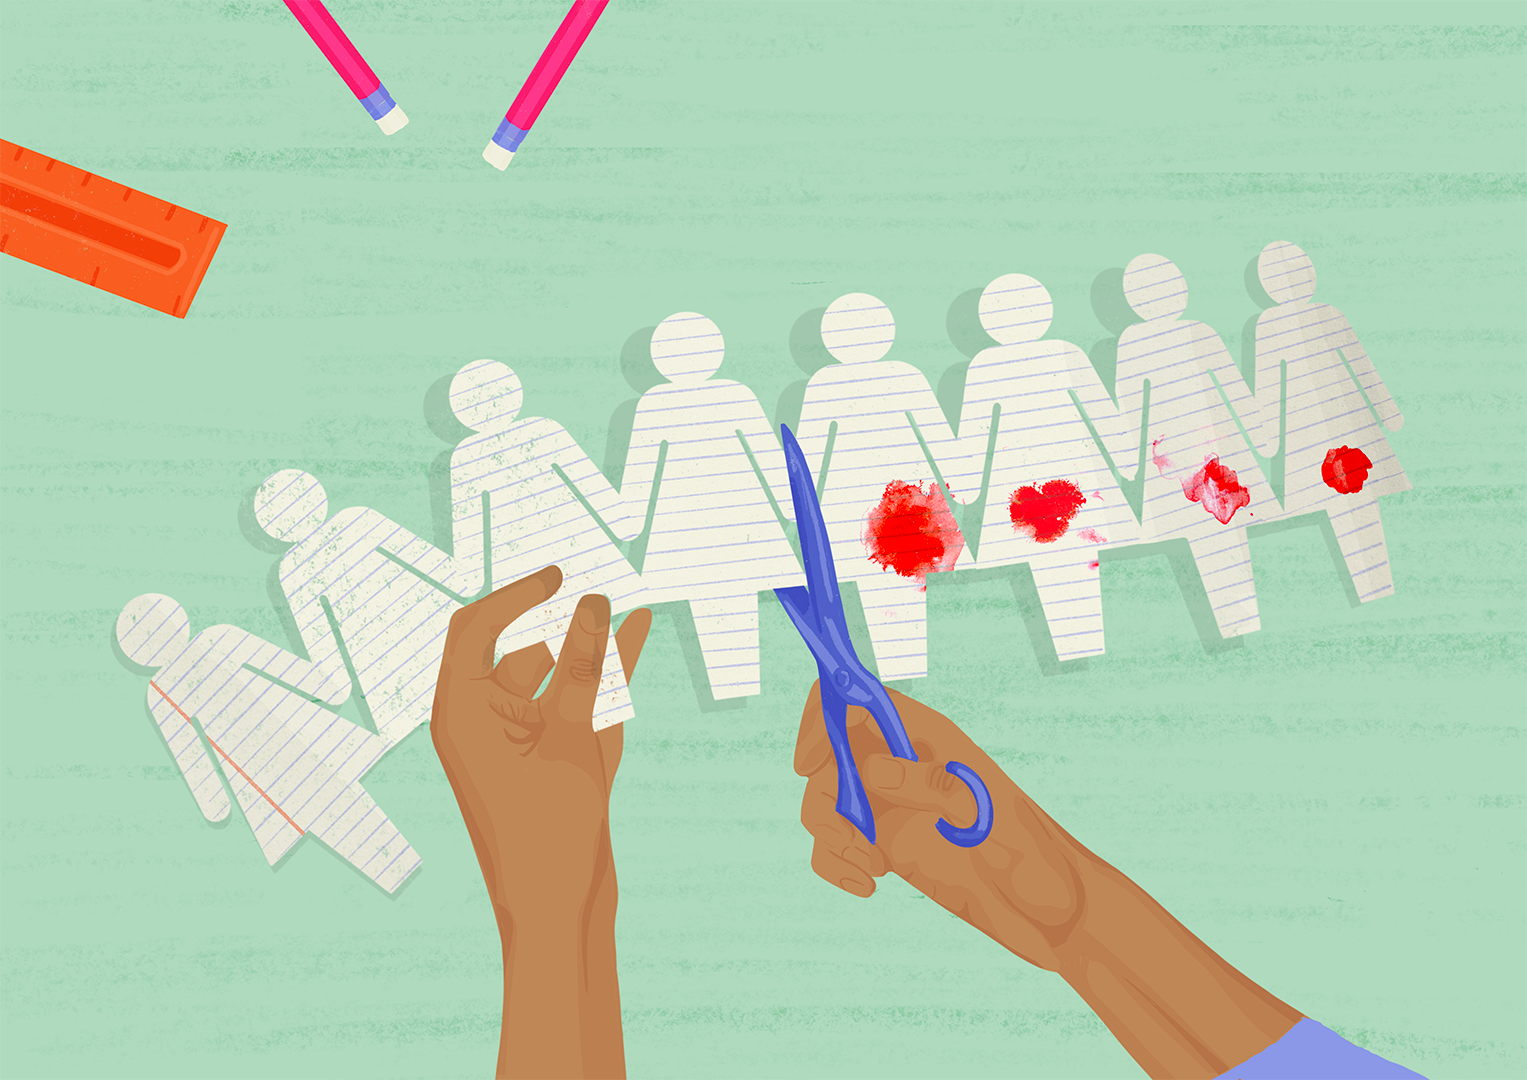 An illustration showing a paper chain of female figures. A pair of hands is shown cutting the chain to separate the clean paper figures from ones that have large spots of blood on their lower body.